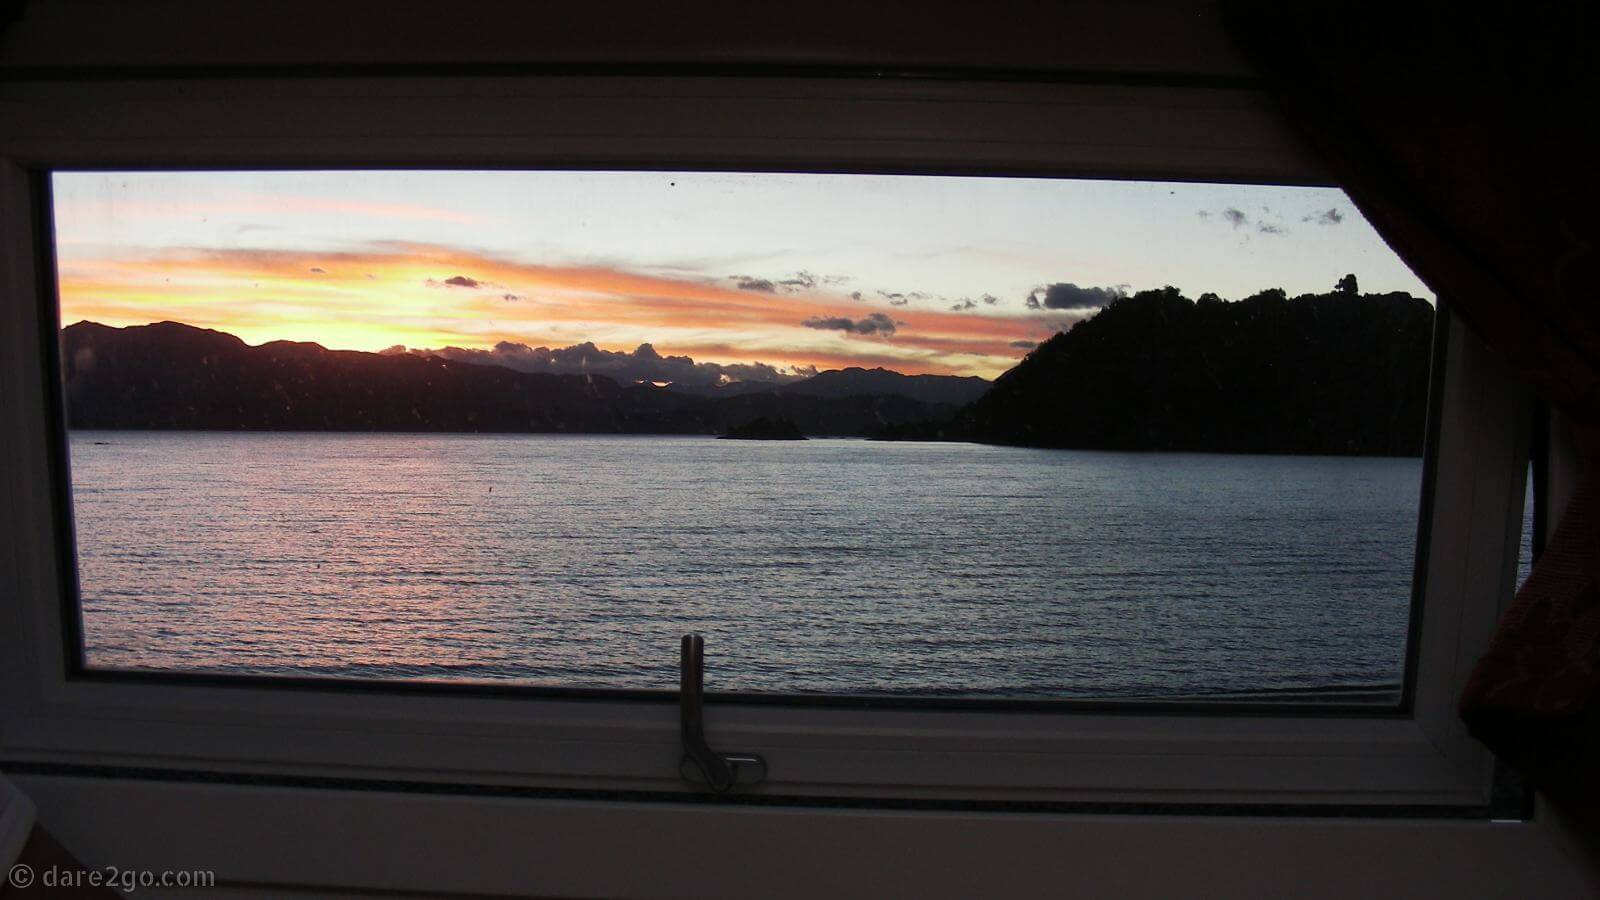 Enjoying this beautiful vista view instead of watching TV. Just another thing that long-term travel has ruined for me.